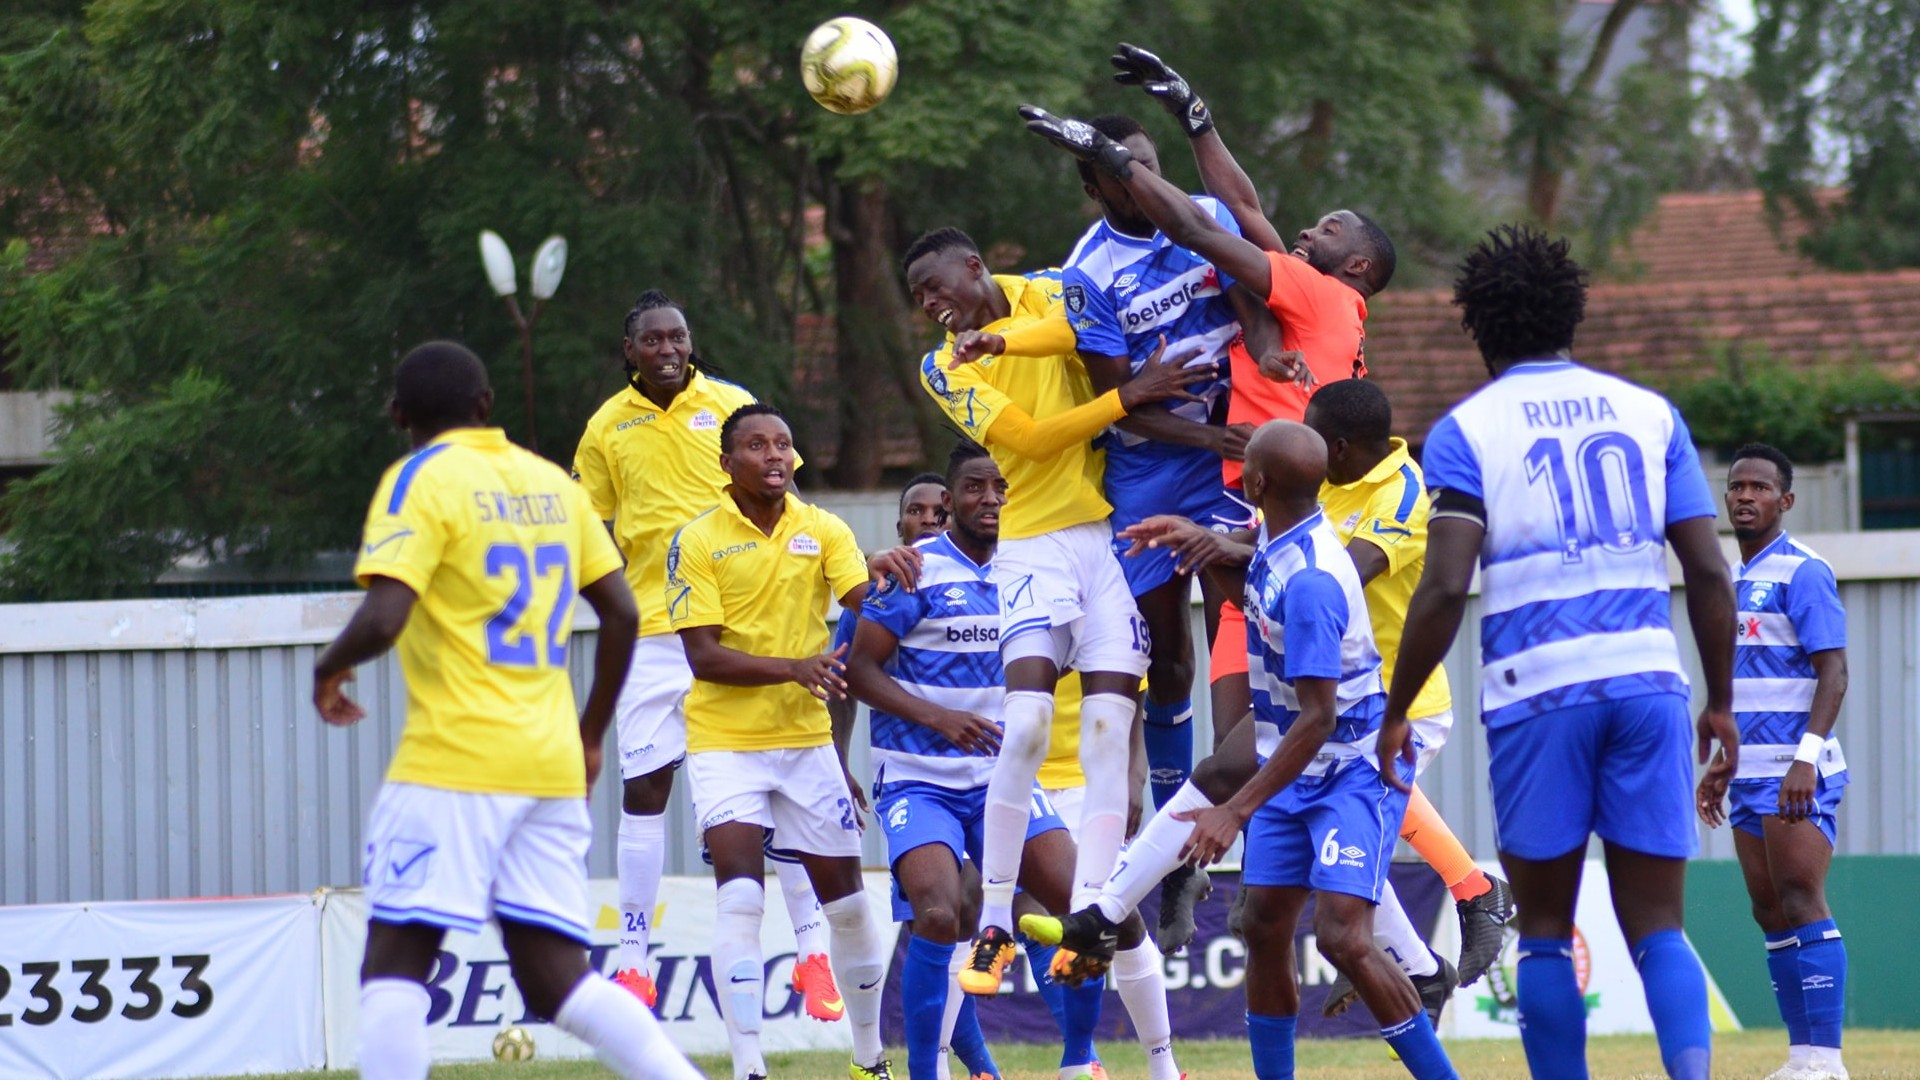 'It was an unrealistic gesture' – Selebwa slams Shikanda's house offer to AFC Leopards players